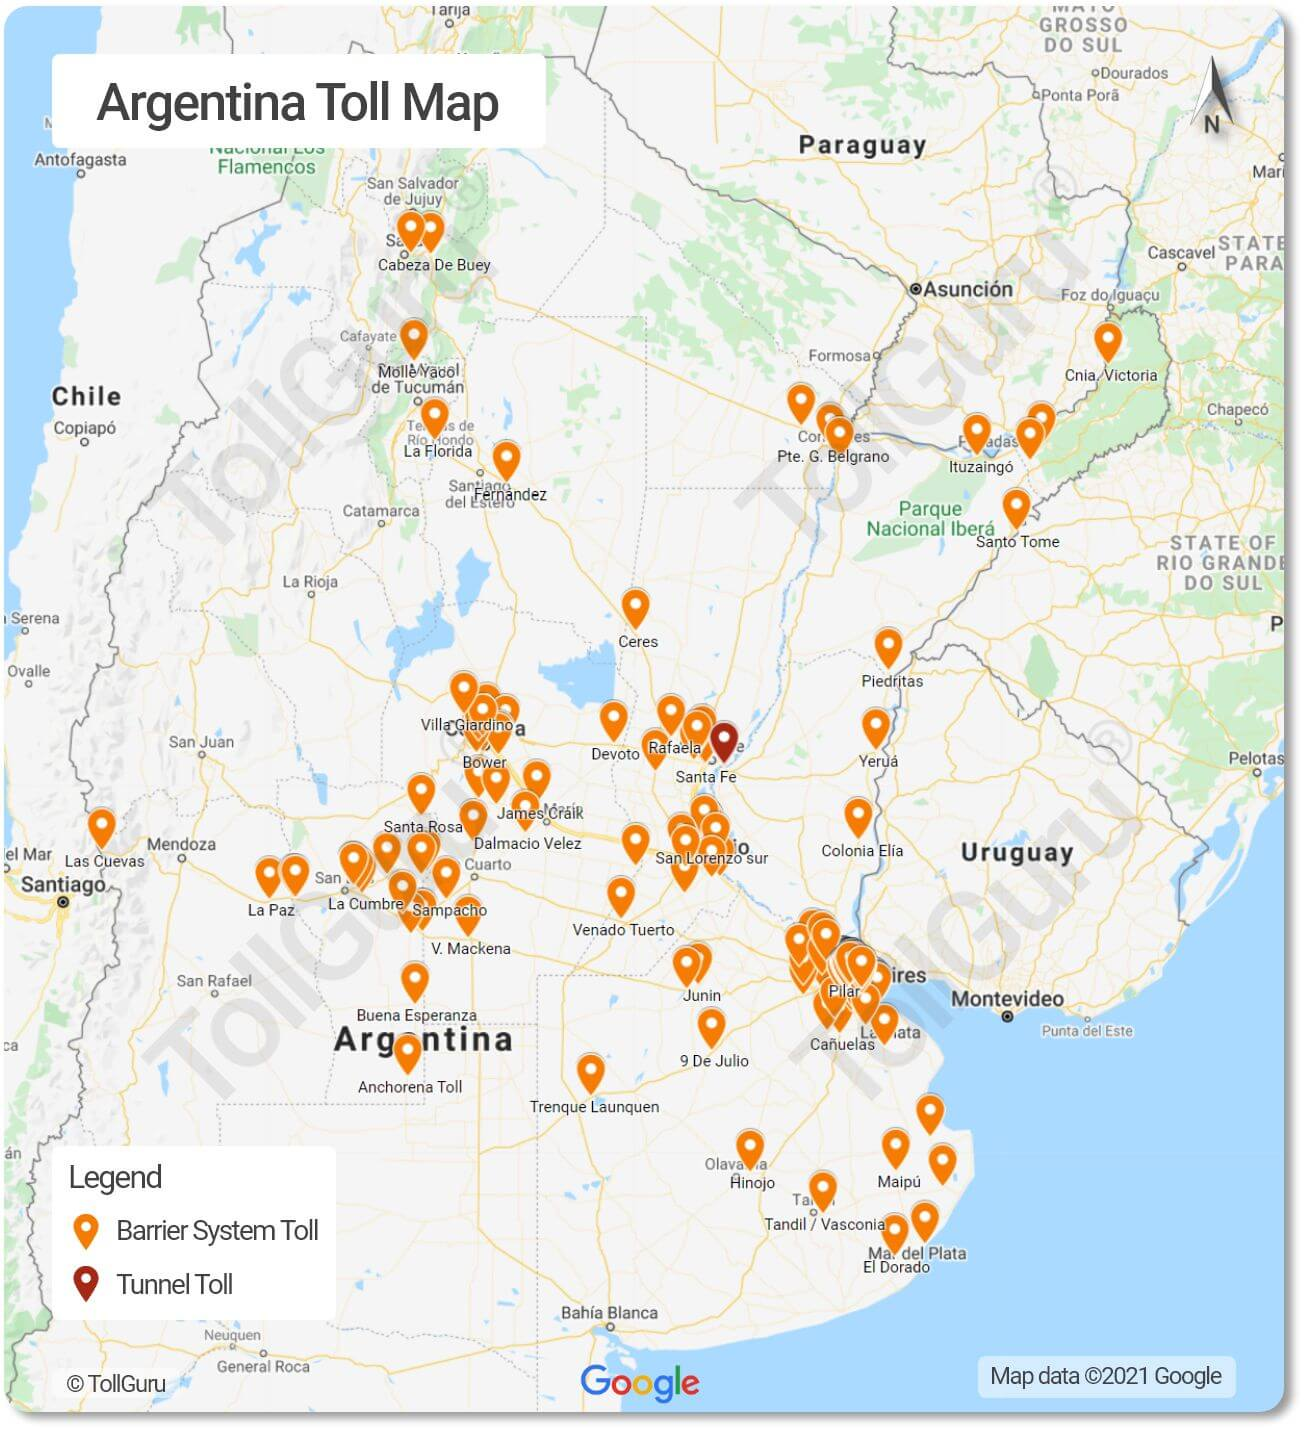 Toll plazas of Argentina for all Corridors, Accesos and National Route Network including National Route 1 and Riccheri Highway.